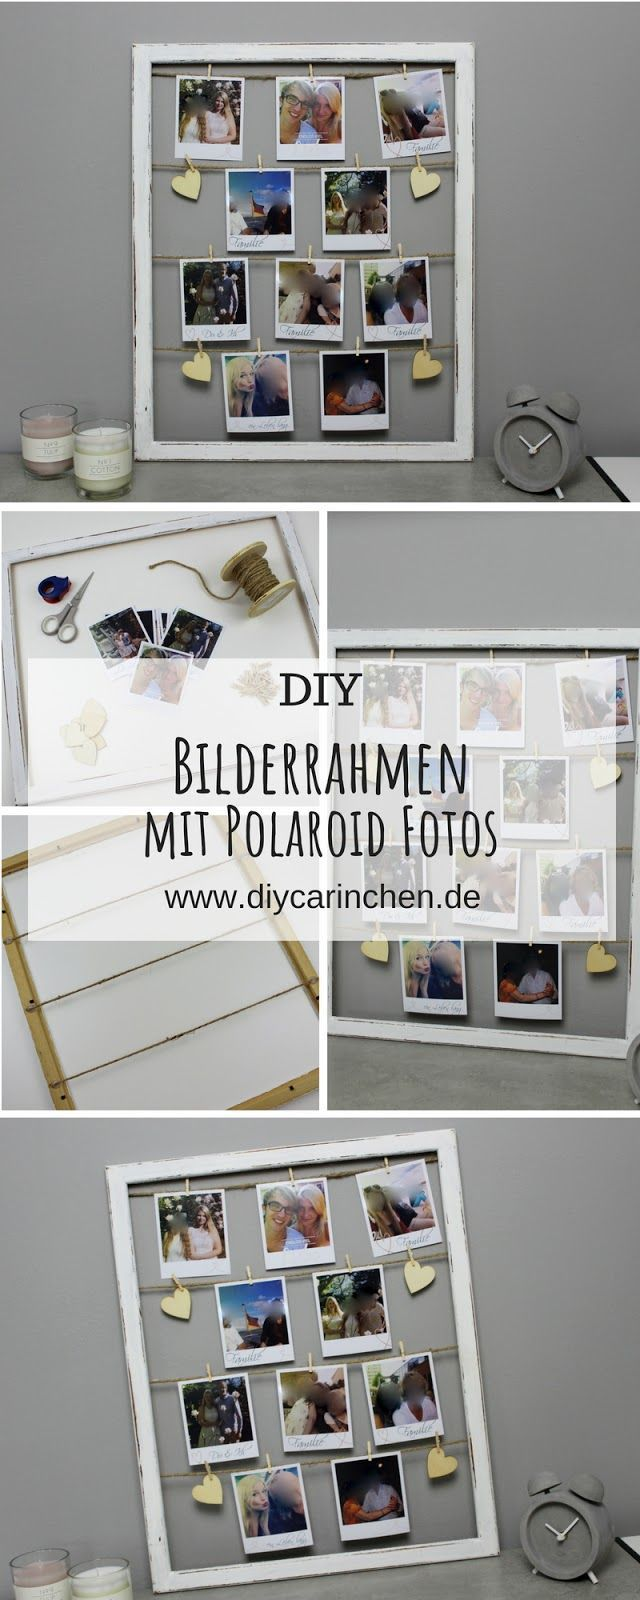 DIY: make a fancy picture frame with photos in the Polaroid style itself  the pe…